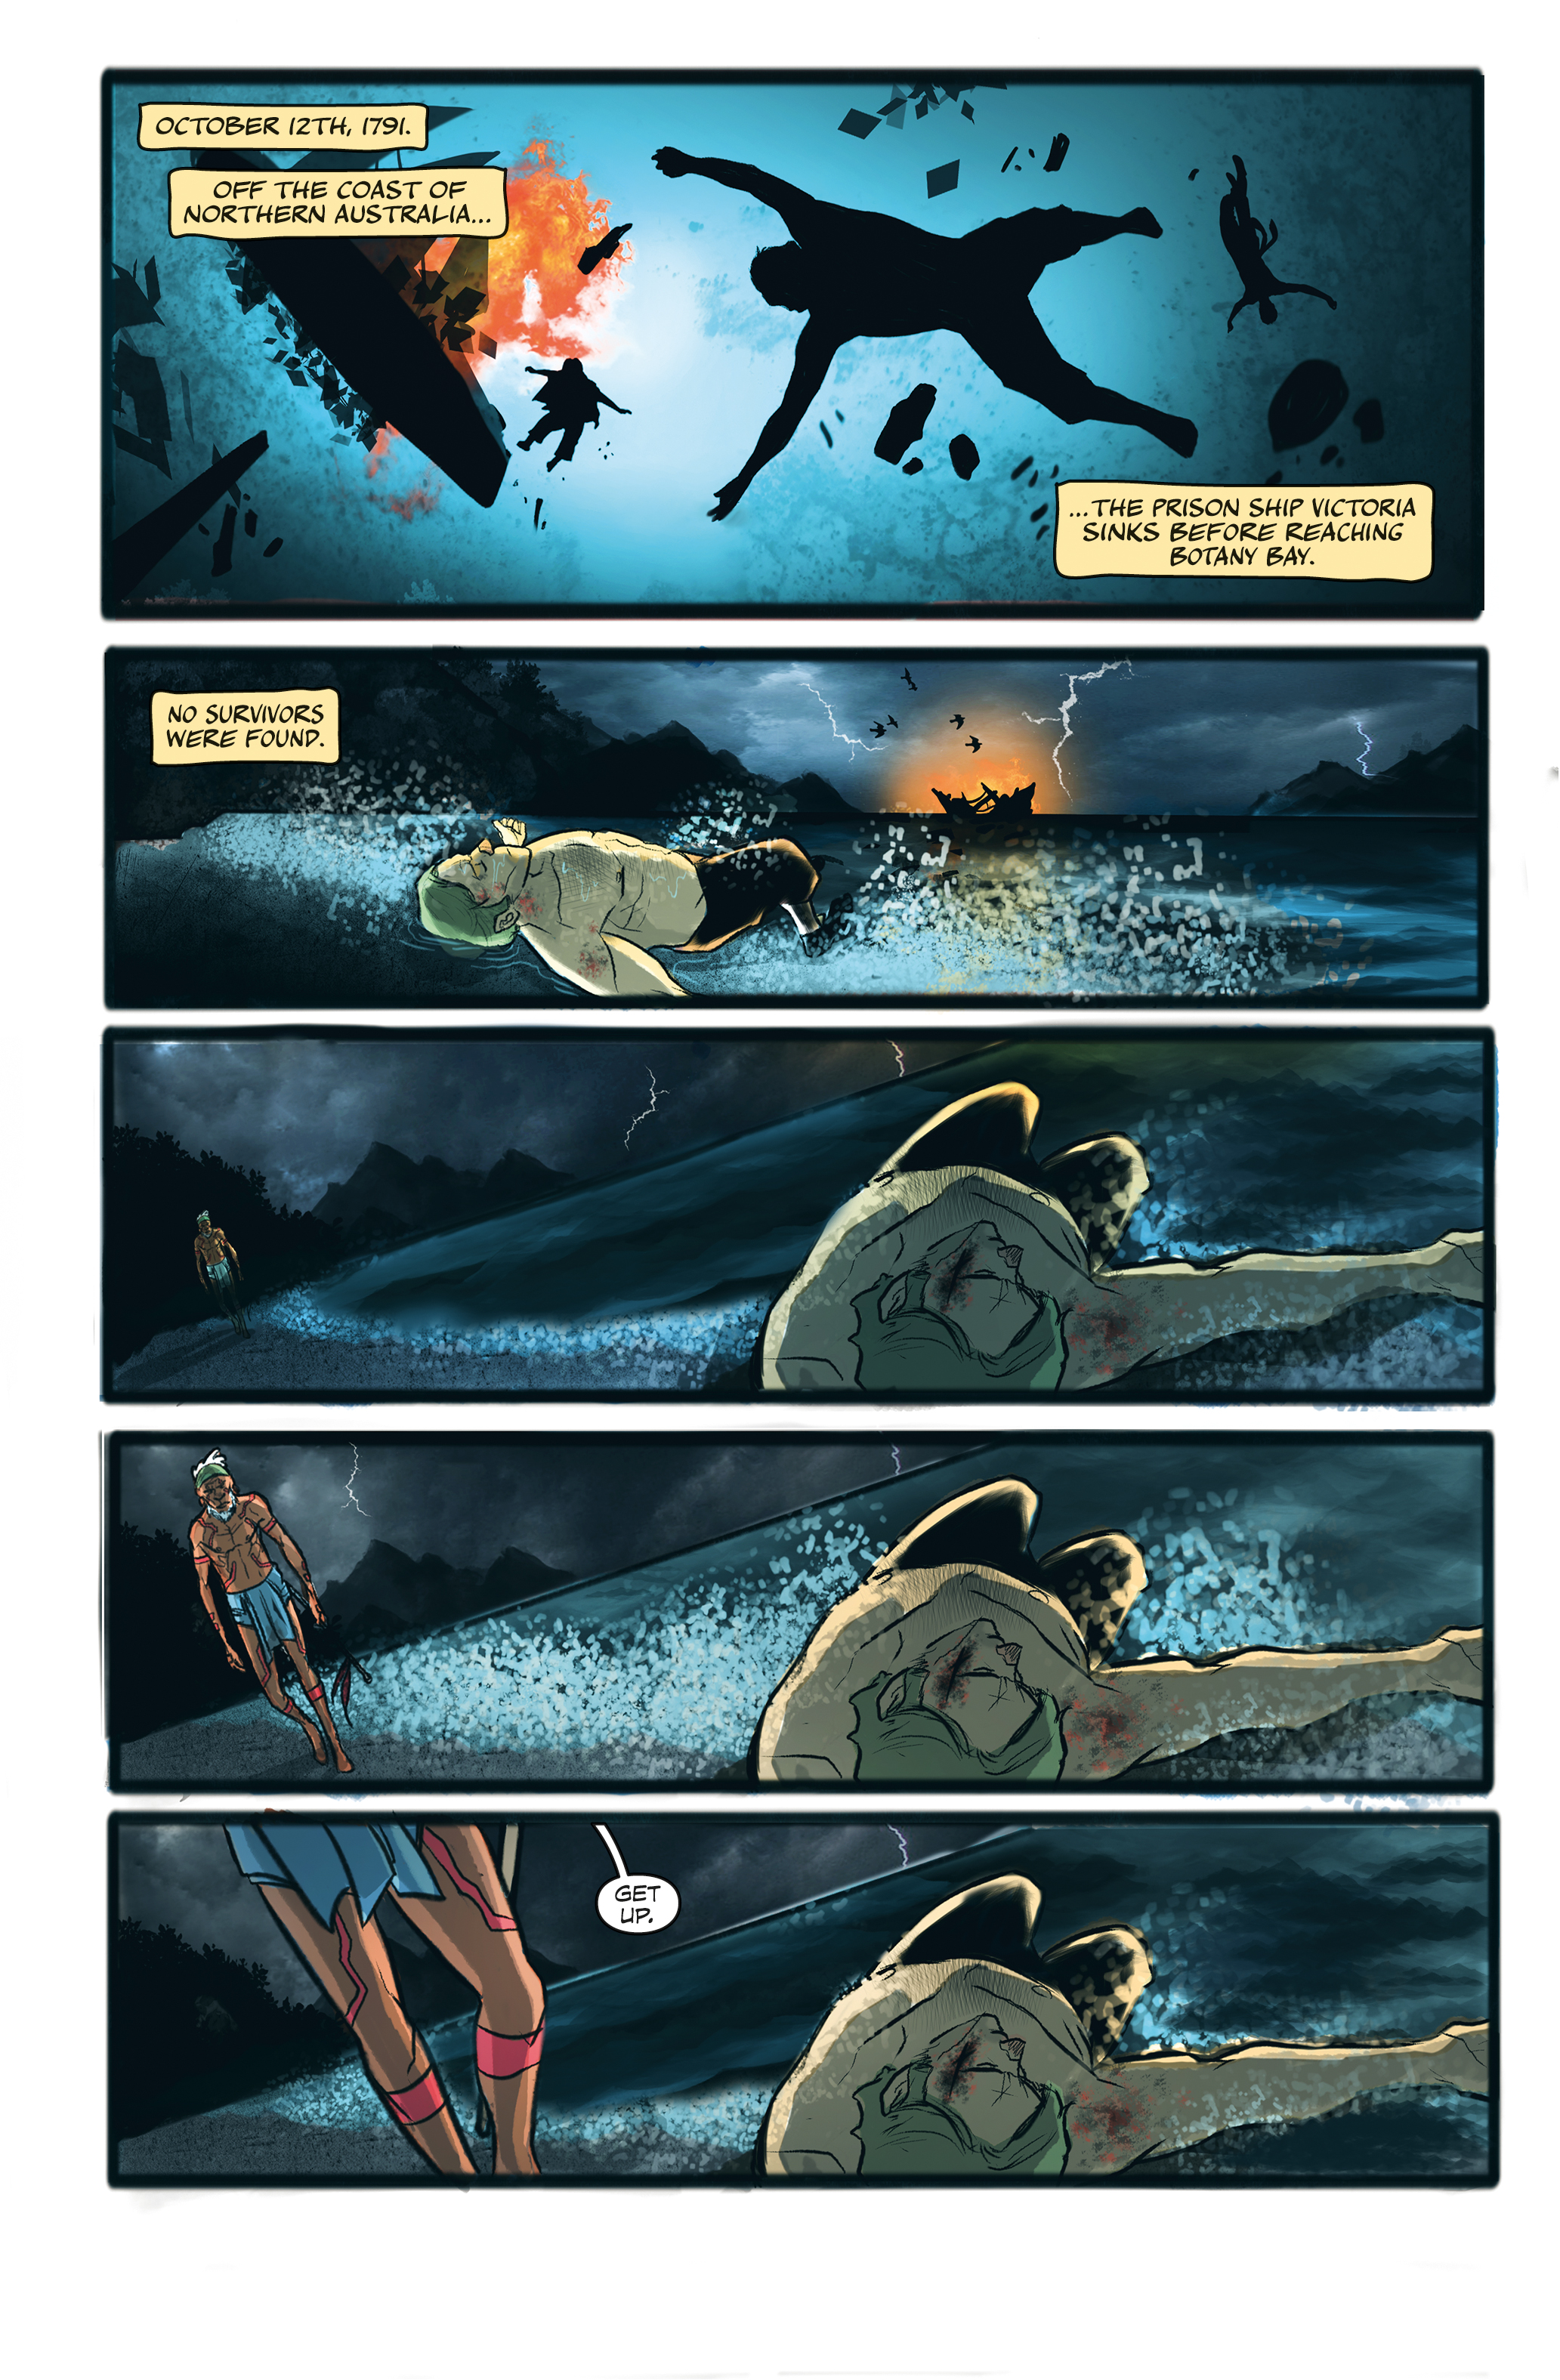 Shelter Division #2 Page 2-01.jpg